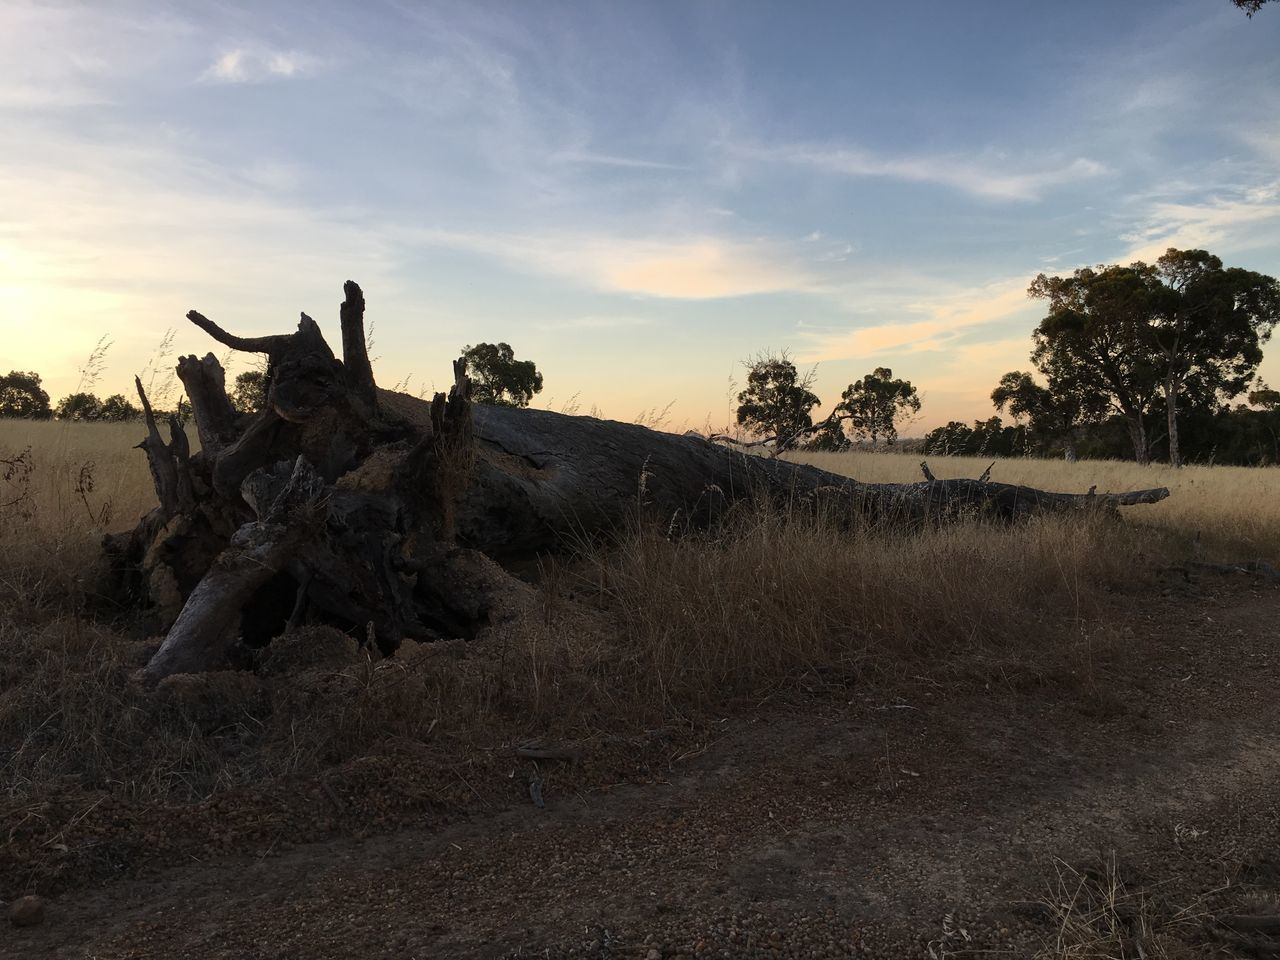 Australia Beauty In Nature Blue Sky Cloud - Sky Clouds Countryside Crop  Cultures Day Dead Tree Dry Fallen Tree Farm Farming Field Grass Nature Nature Nature_collection No People Outdoors Roots Sky Sunset Tree